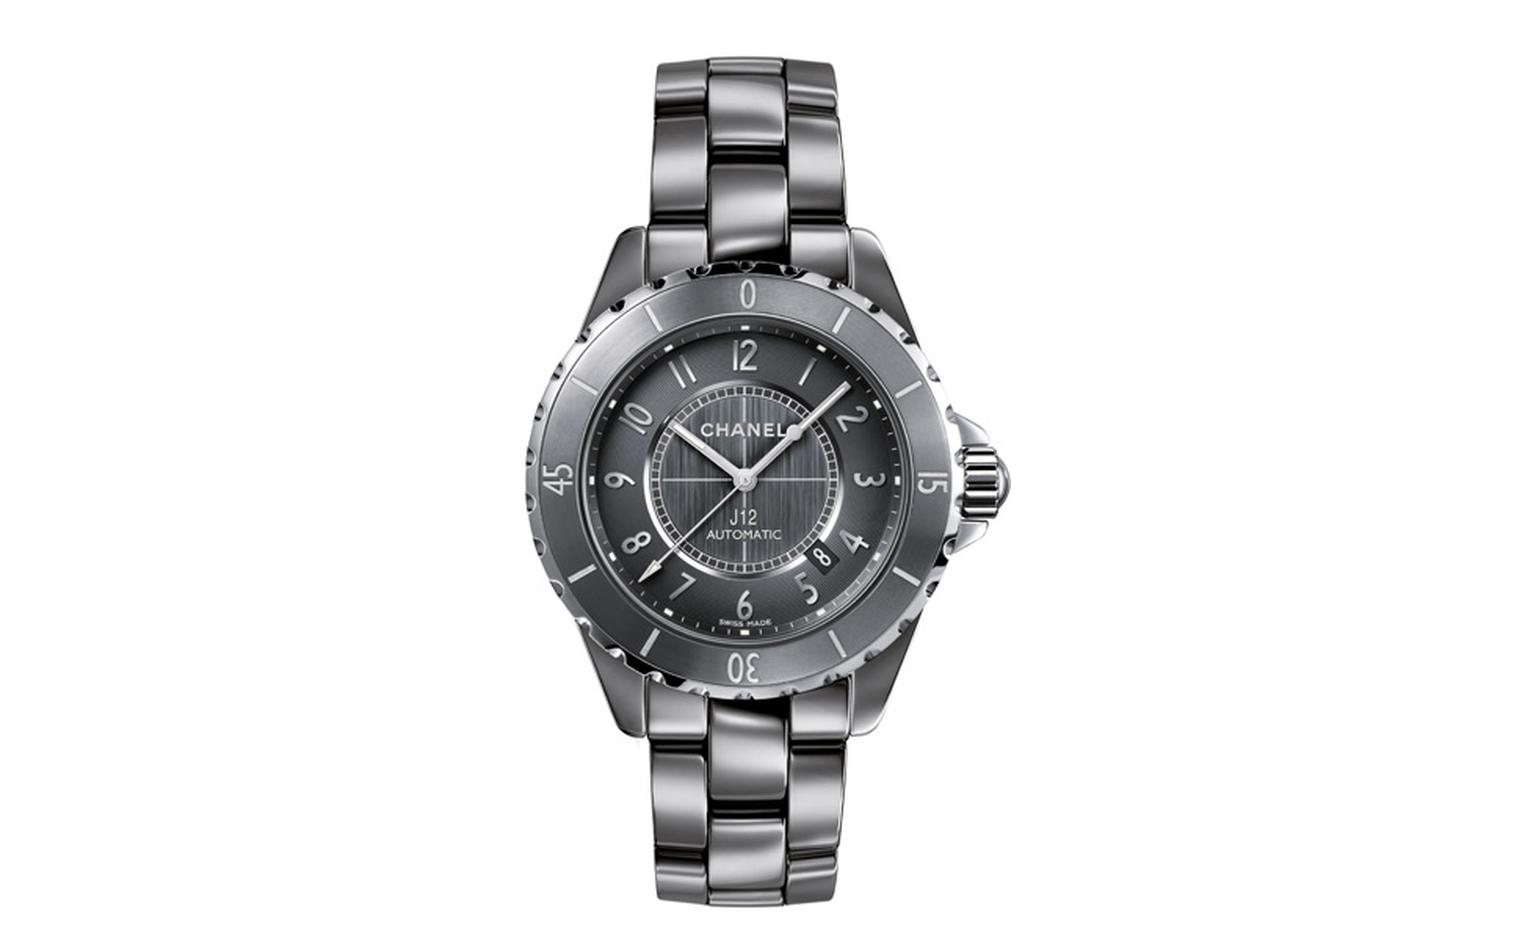 Chanel J12 Chromatic watch in titanium ceramic, a new highly scratch-resistant material almost as hard as sapphire. Self-winding mechanical movement. Functions: hours, minutes, seconds, date. 42-hour power reserve. Unidirectional rotating bezel....